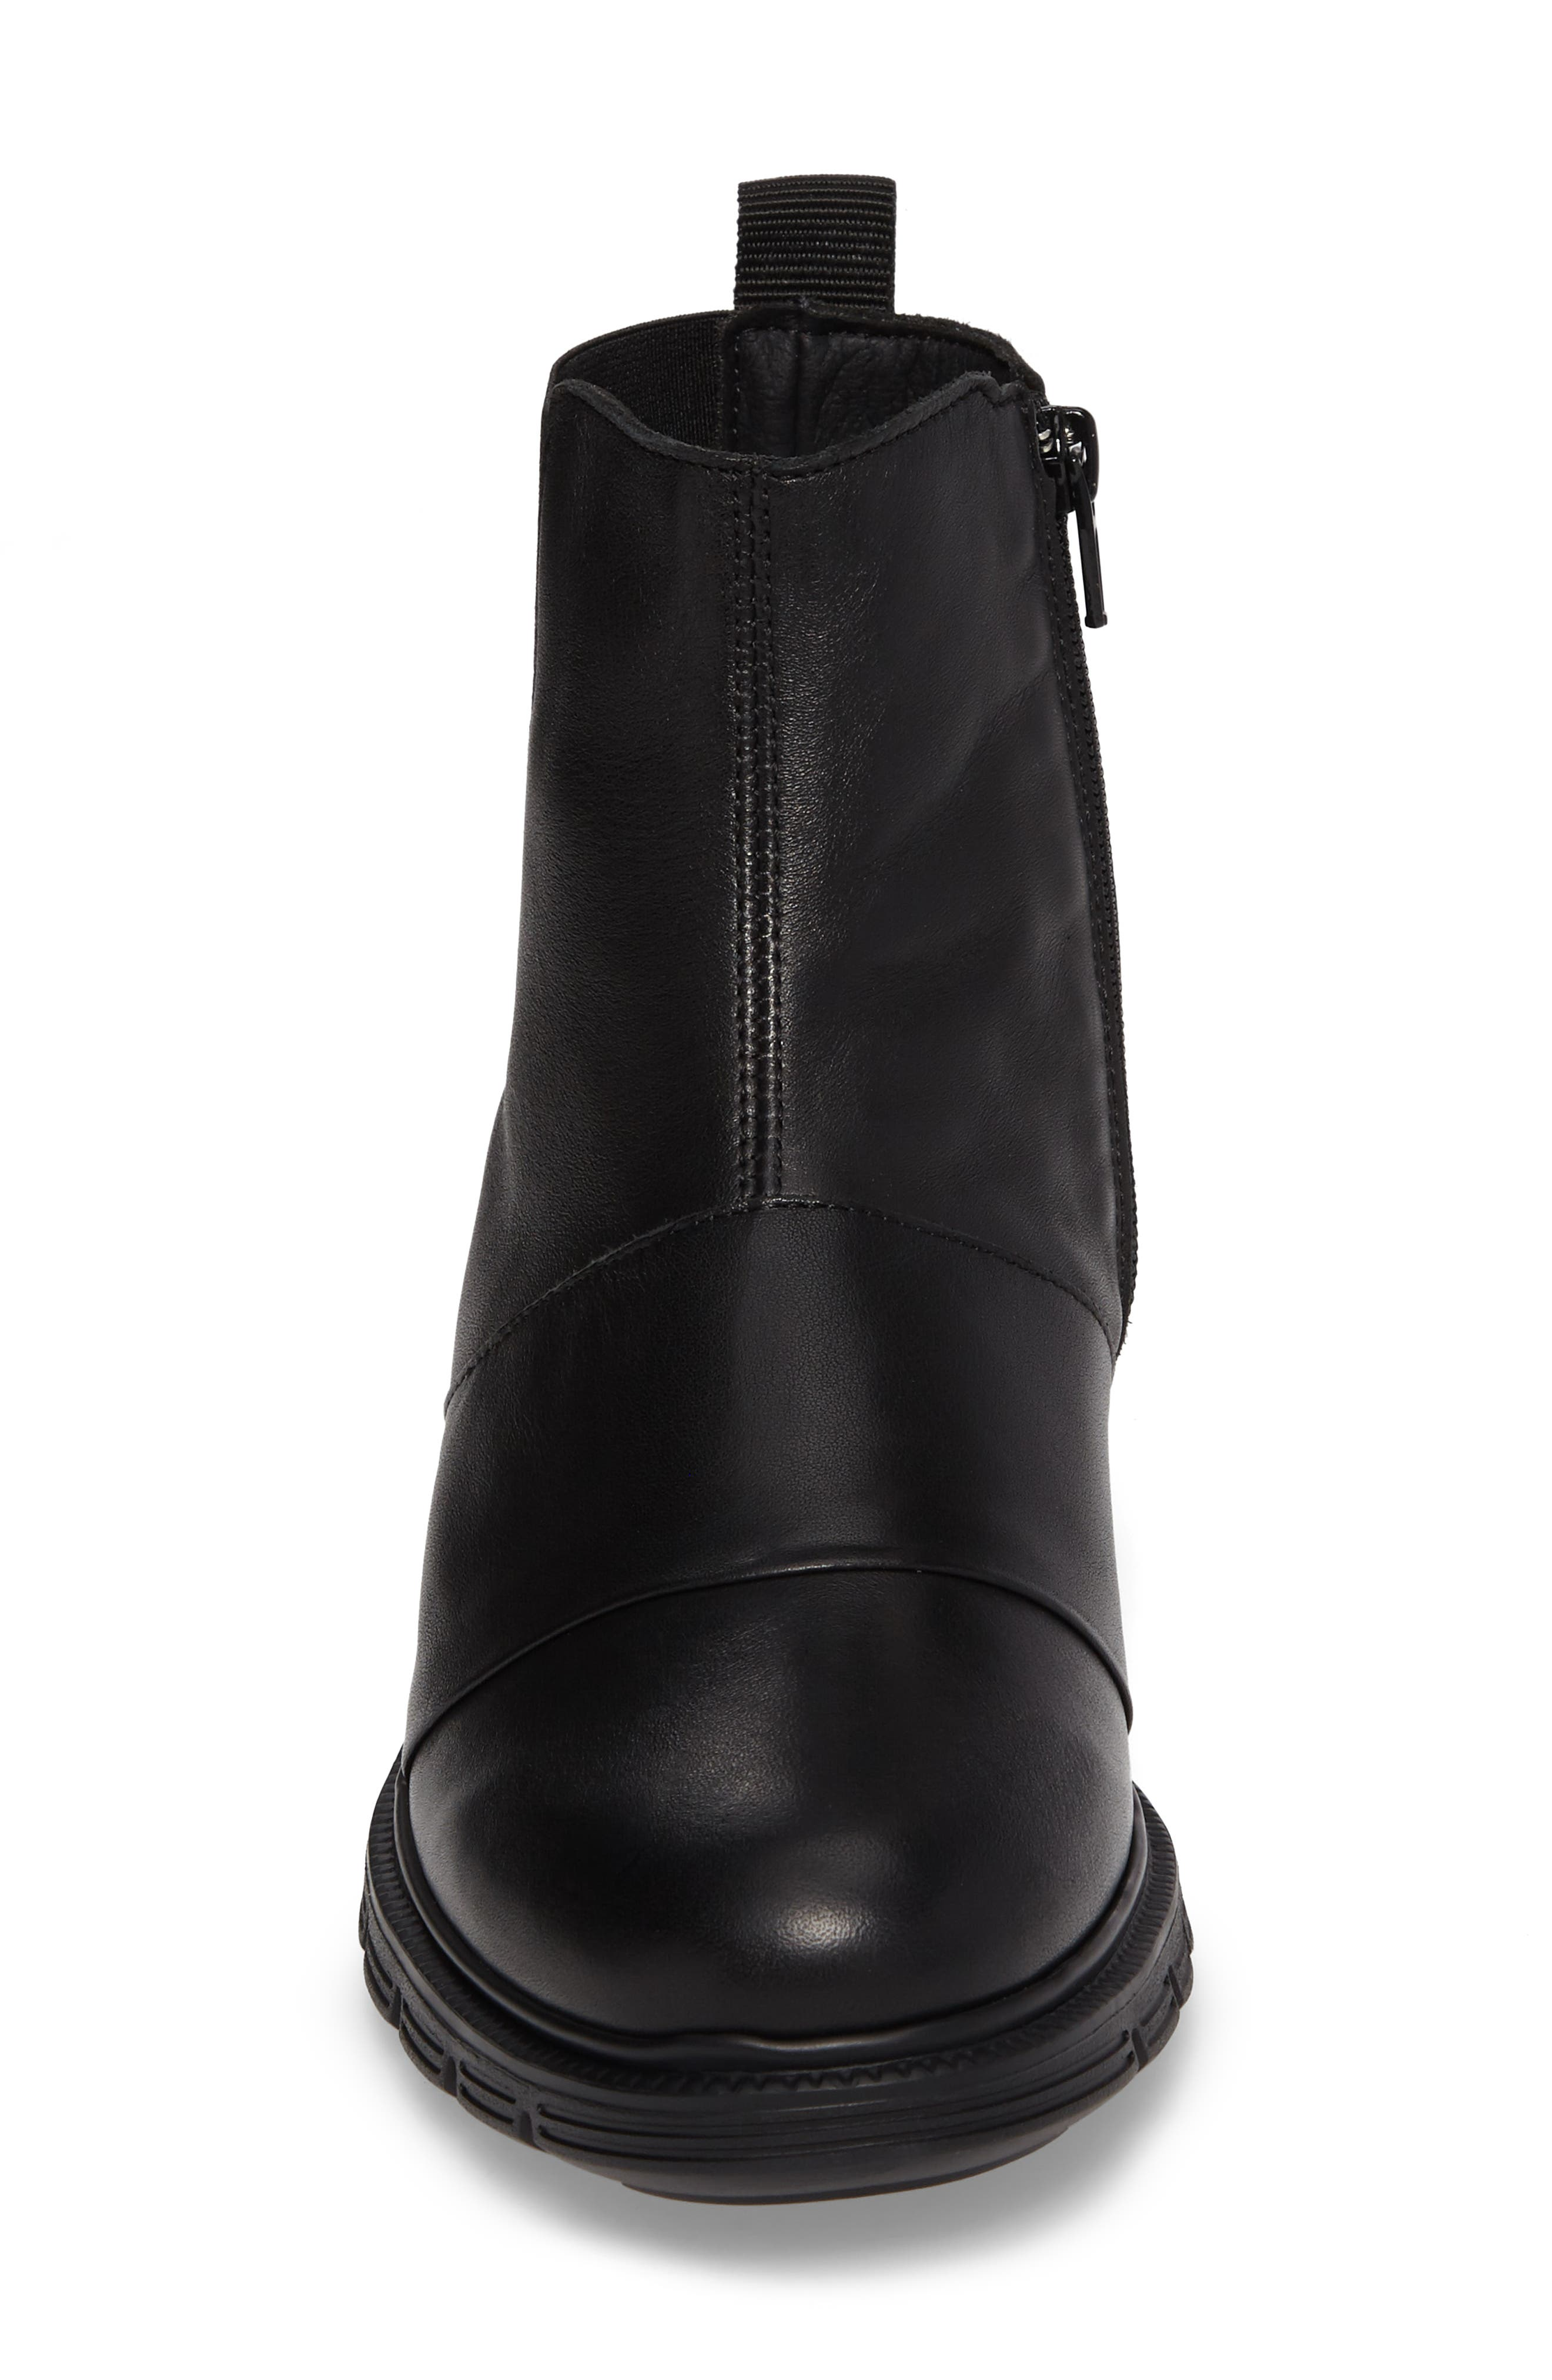 Gish Water-Resistant Bootie,                             Alternate thumbnail 4, color,                             BLACK LEATHER